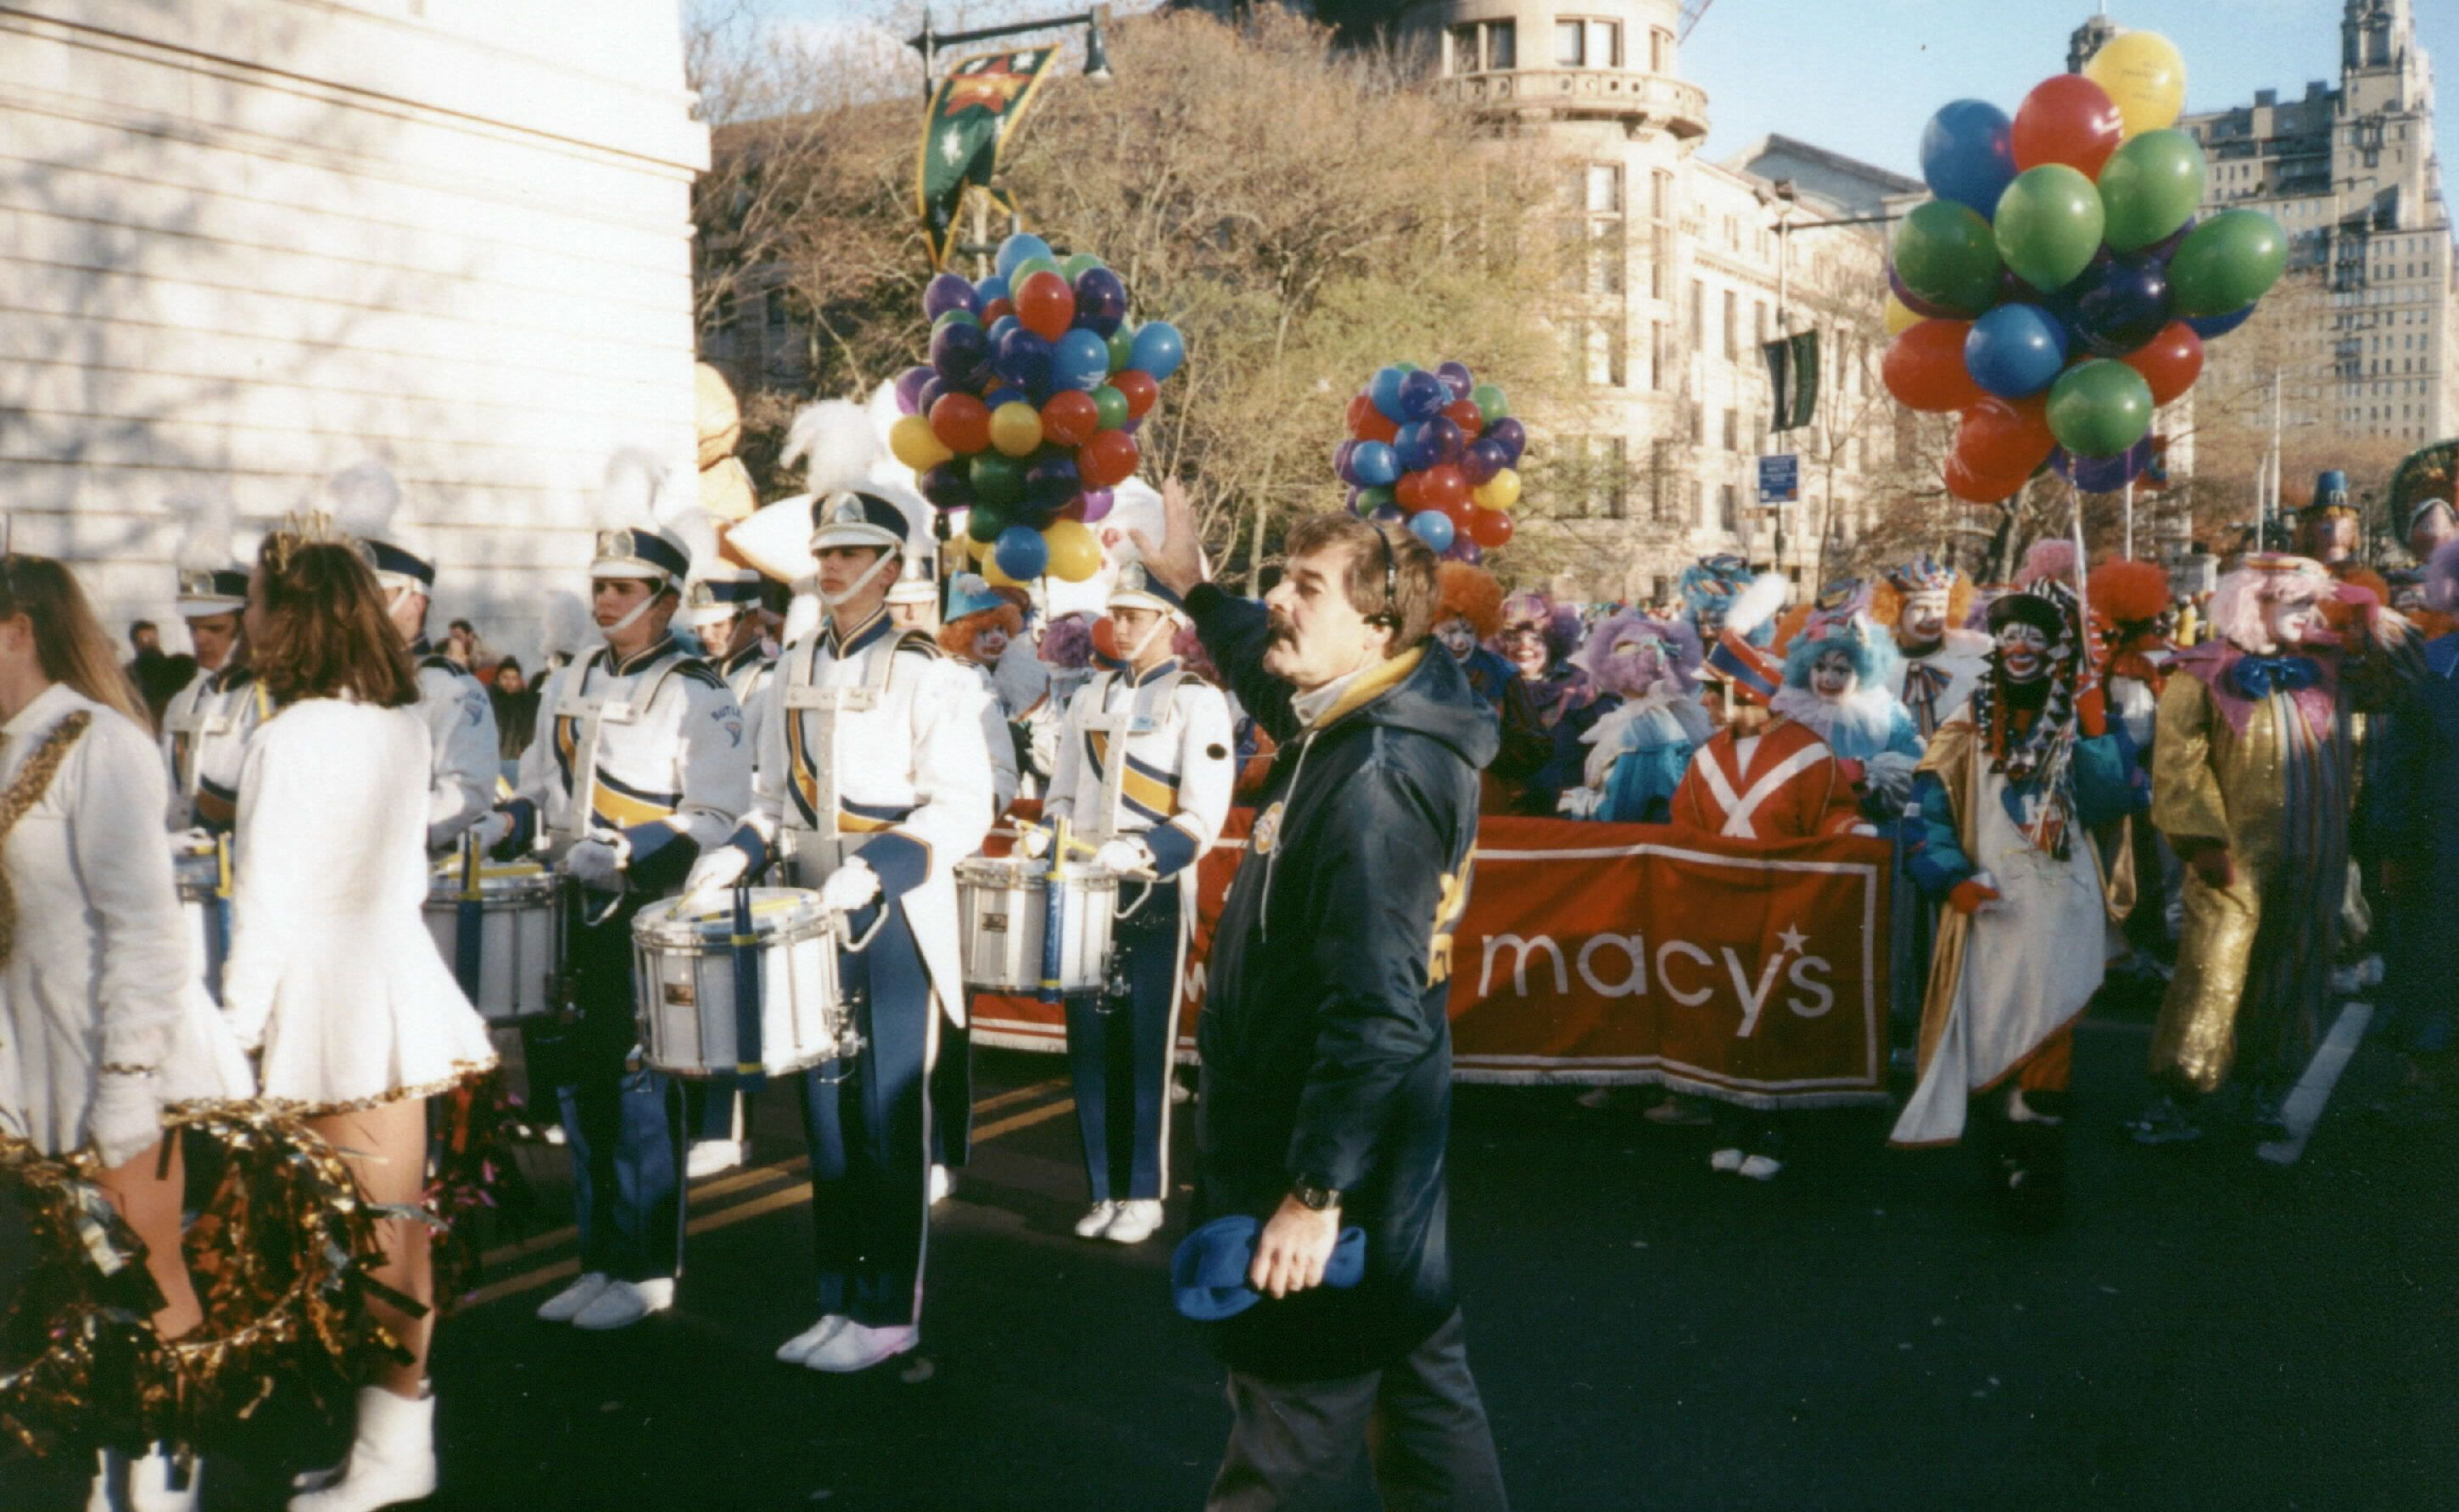 1997 Macy S Thanksgiving Day Parade Lead Band Preparing For The Nbc Tv Opening Segment Macy S Thanksgiving Day Parade Thanksgiving Day Parade Marching Band